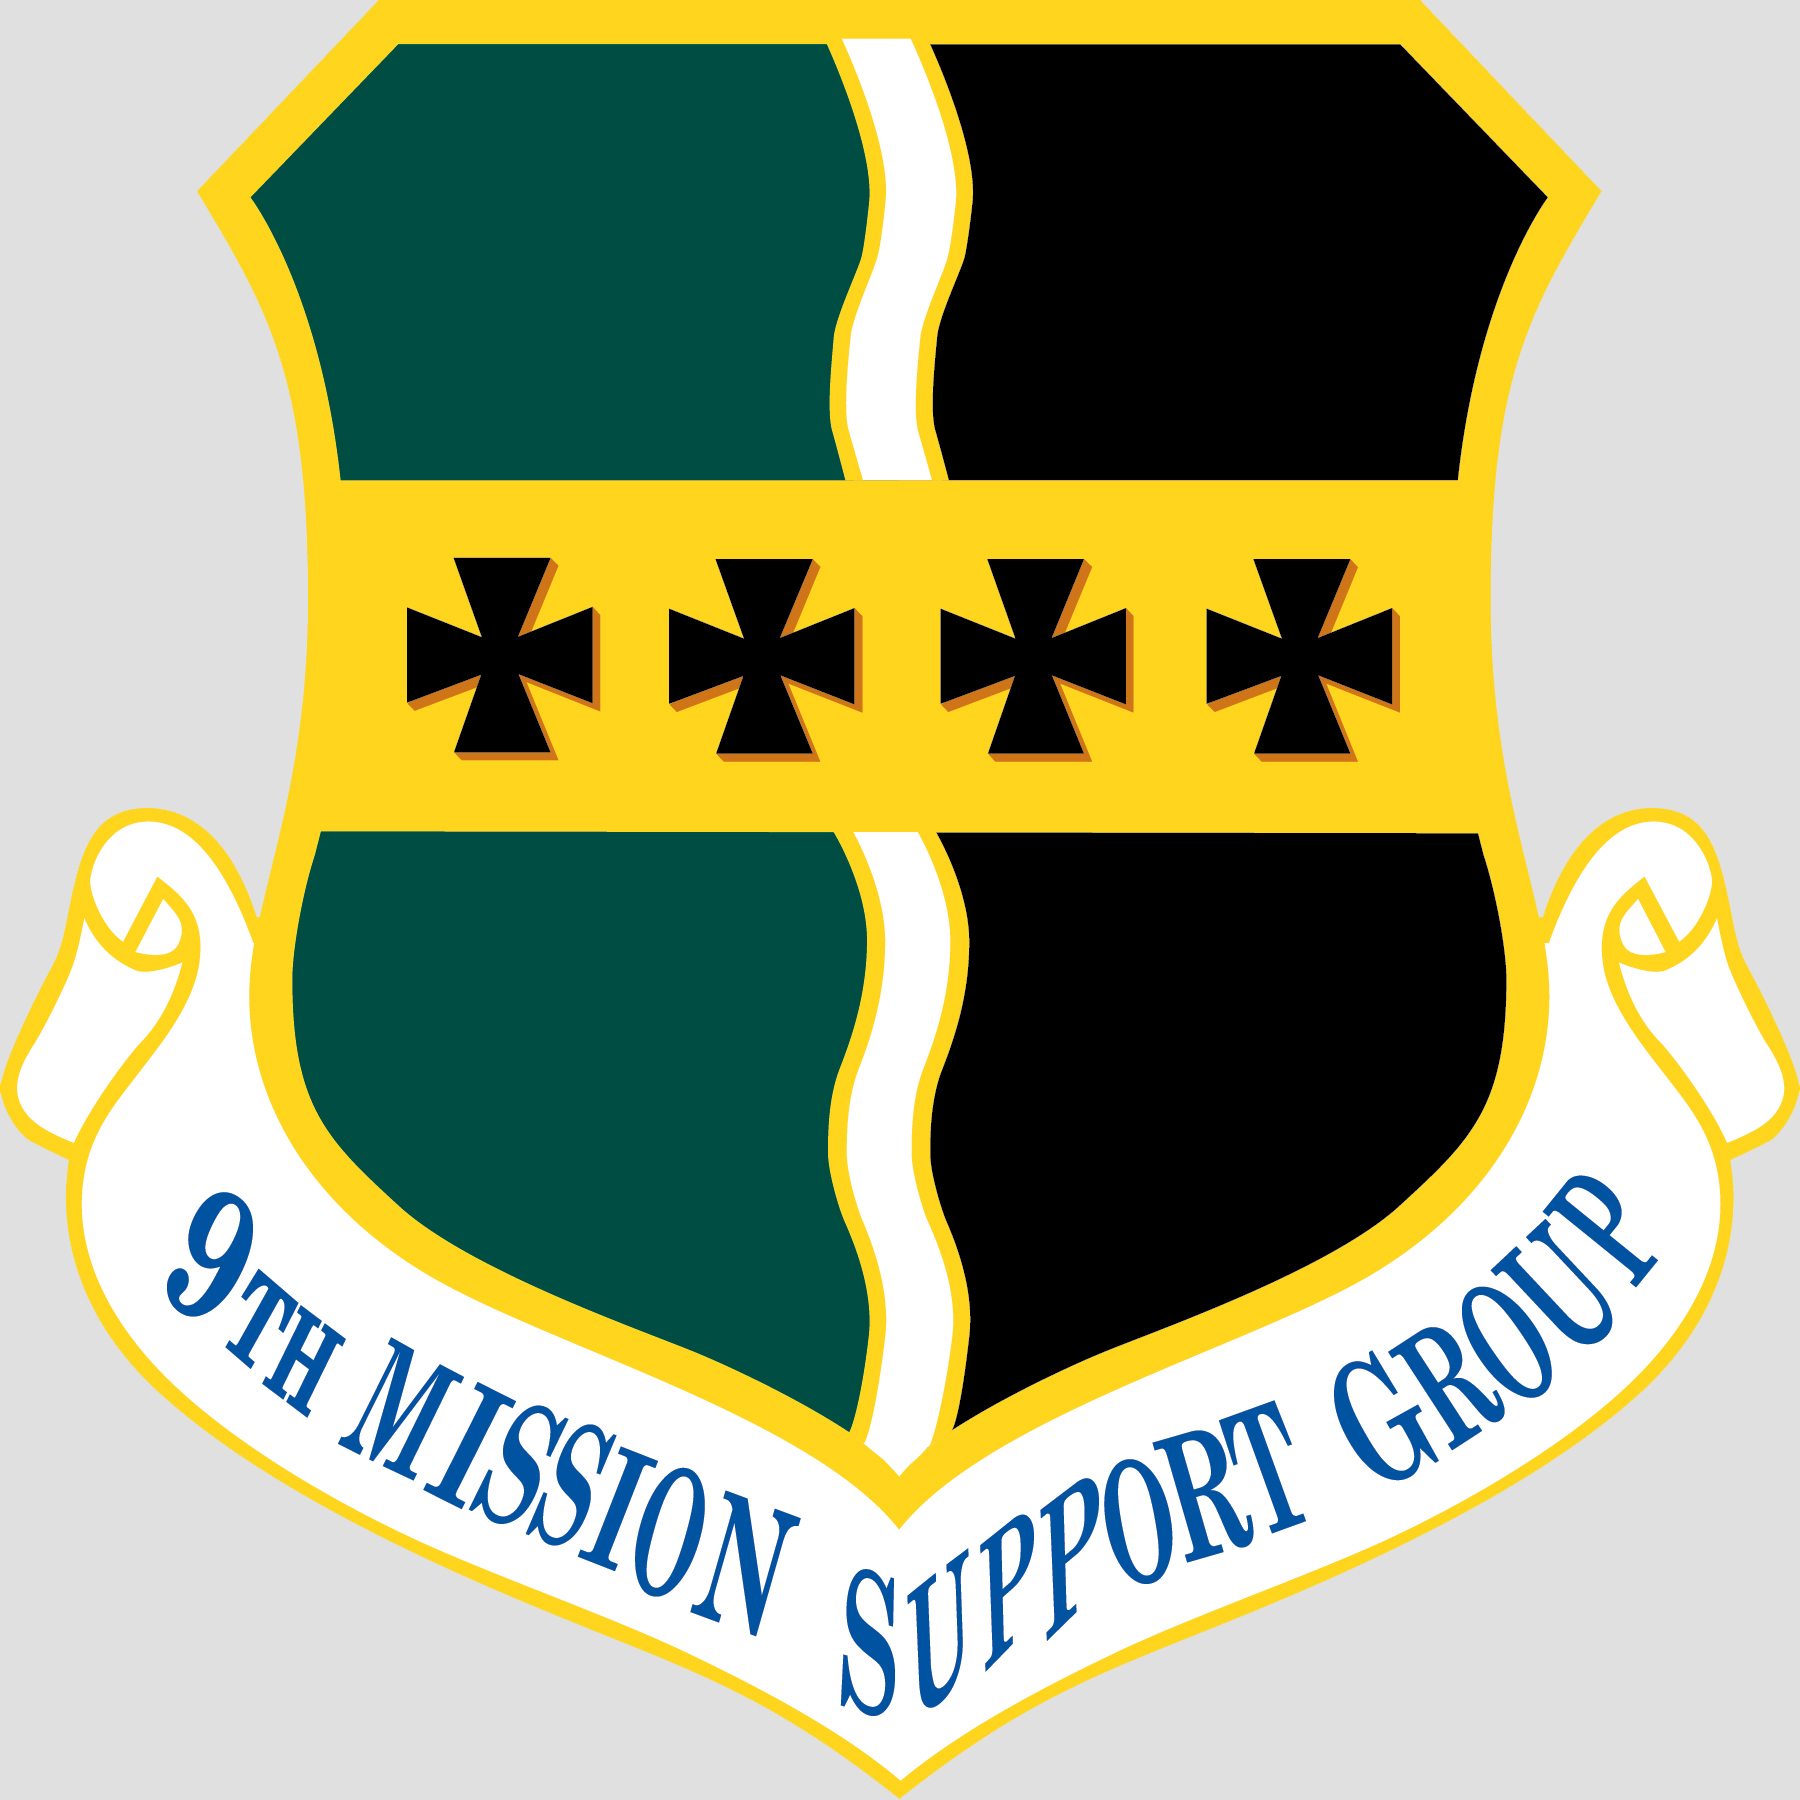 9th Mission Support Group